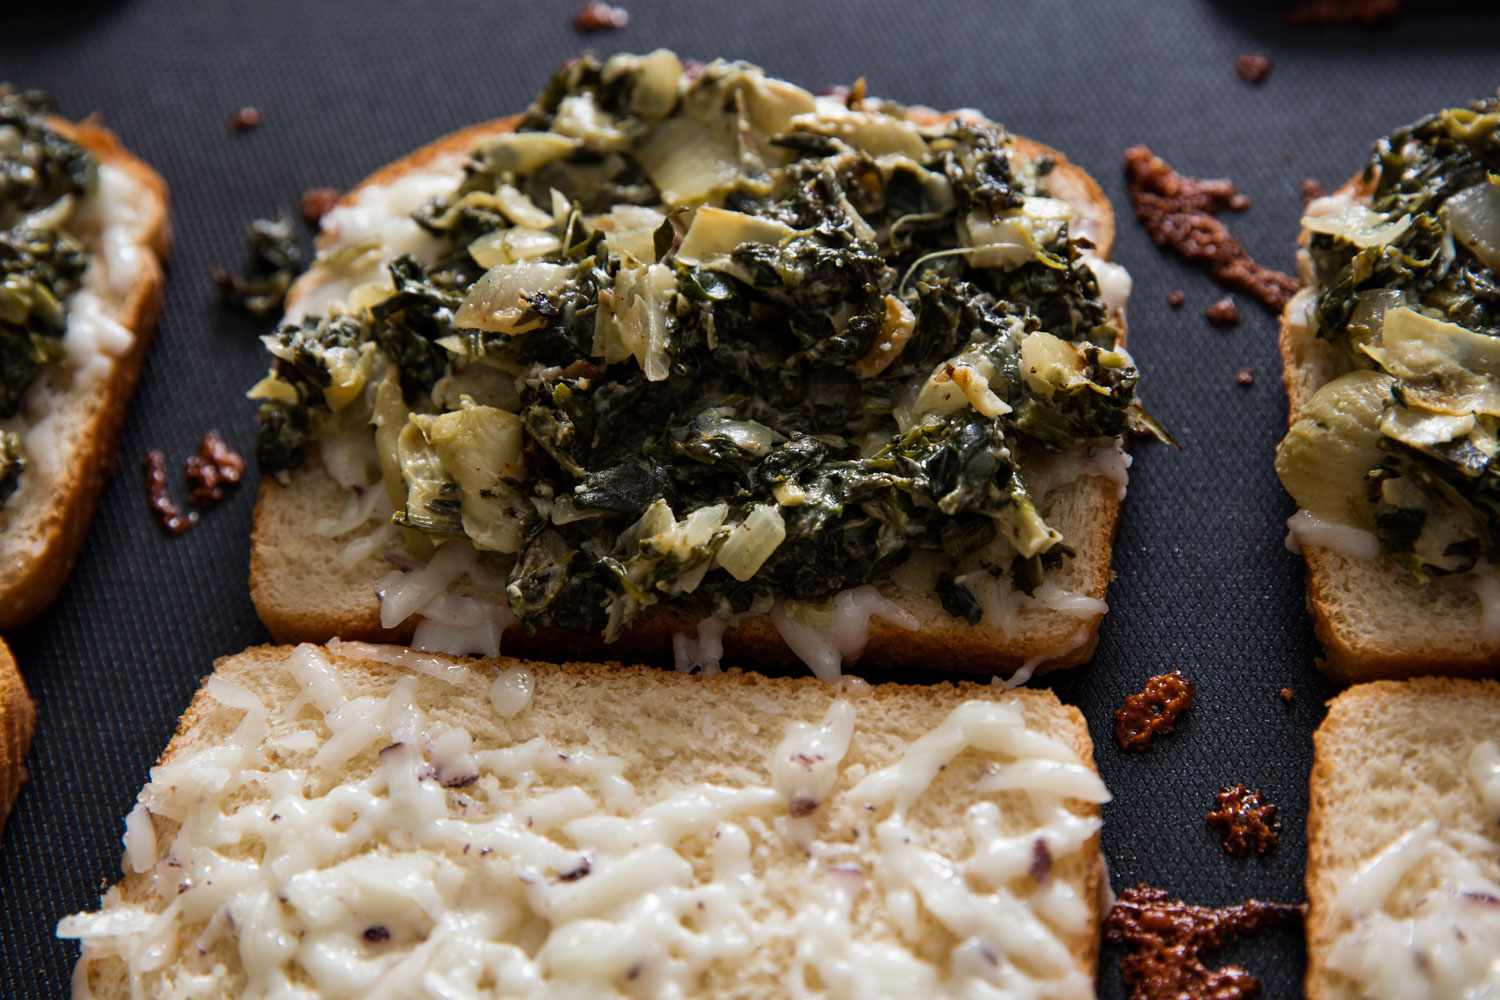 20160826-spinach-artichoke-grilled-cheese-vicky-wasik-2.jpg